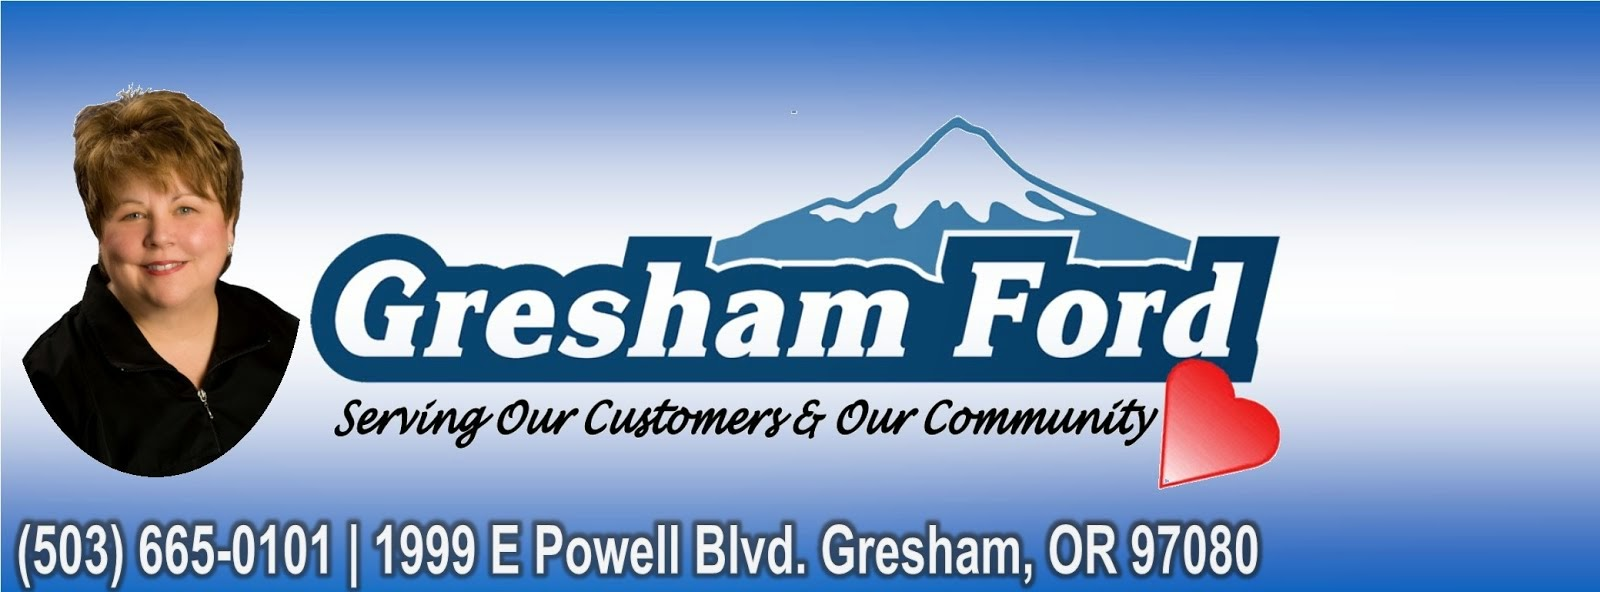 "Gresham Ford's ""Contribute to the Community"" Program"